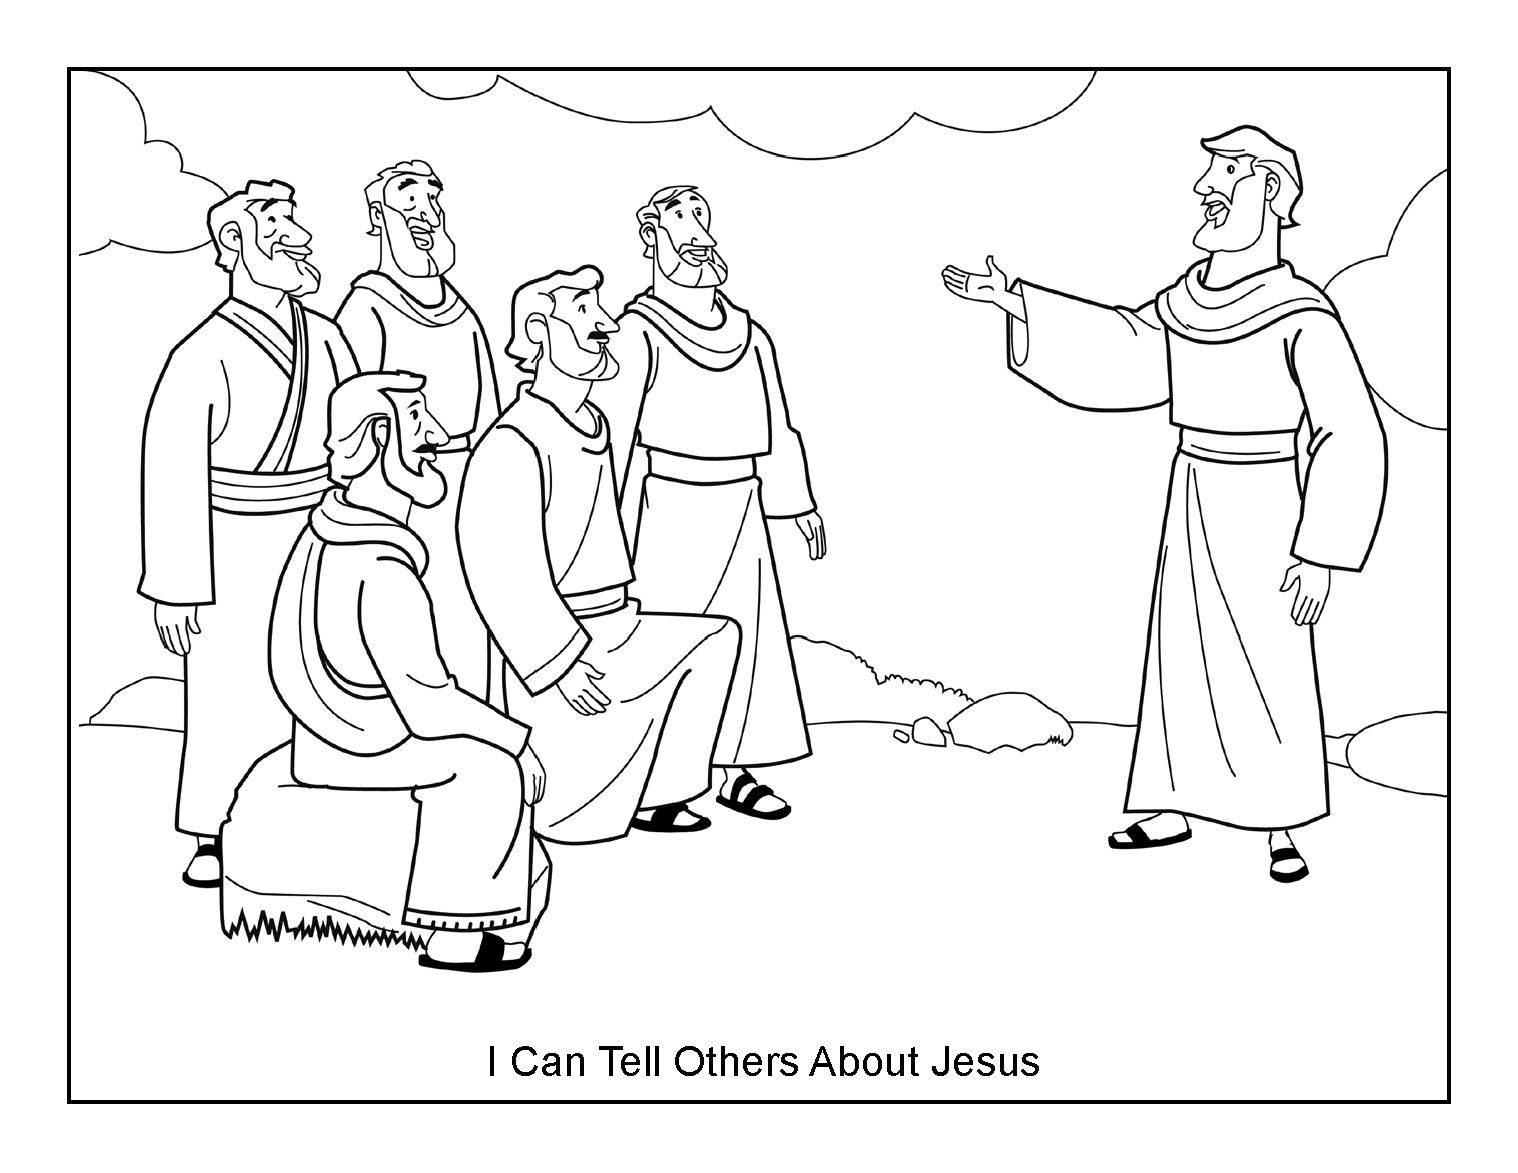 I Can Tell Others About Jesus Coloring Page On Sunday School Zone